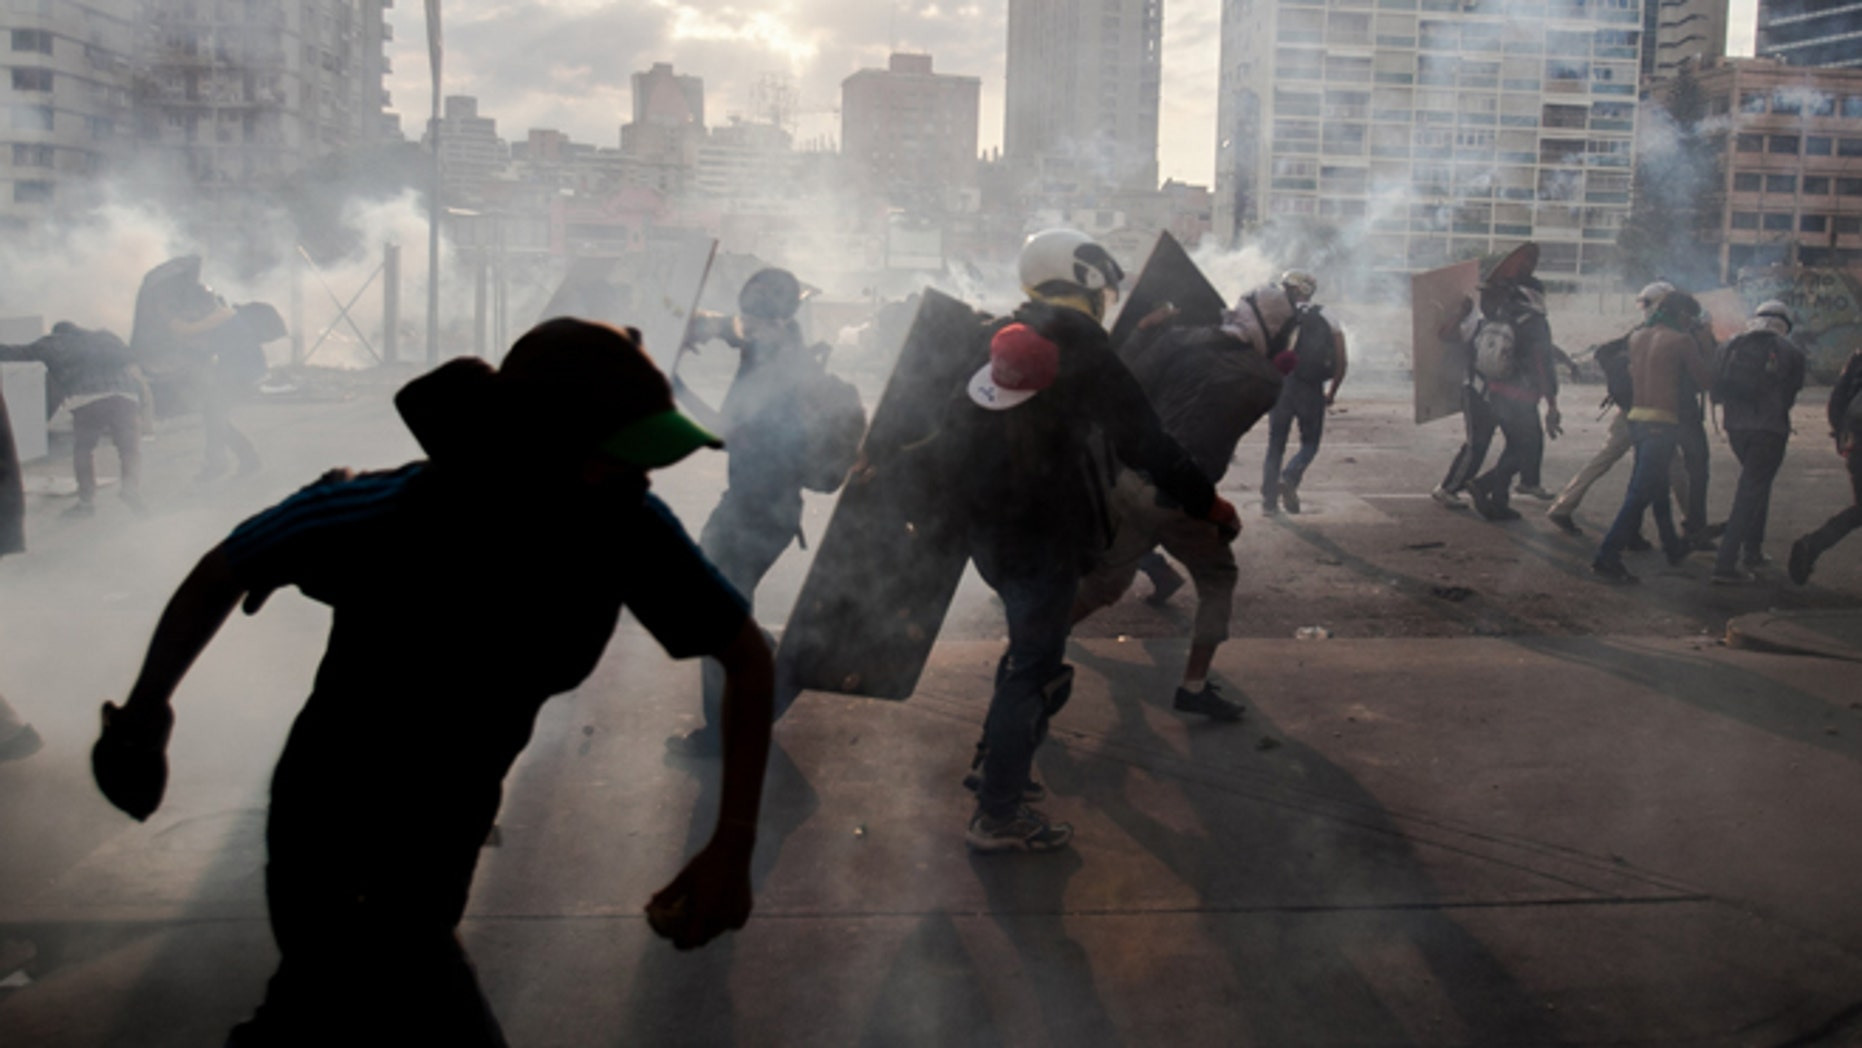 Demonstrators take cover from teargas fired by the police during clashes in an anti-government protest in Caracas, Venezuela, Monday, March 10, 2014. The Venezuelan government and opposition appear to have reached a stalemate, in which street protests continue almost daily while the opposition sits out a peace process it calls farcical. (AP Photo/Alejandro Cegarra)